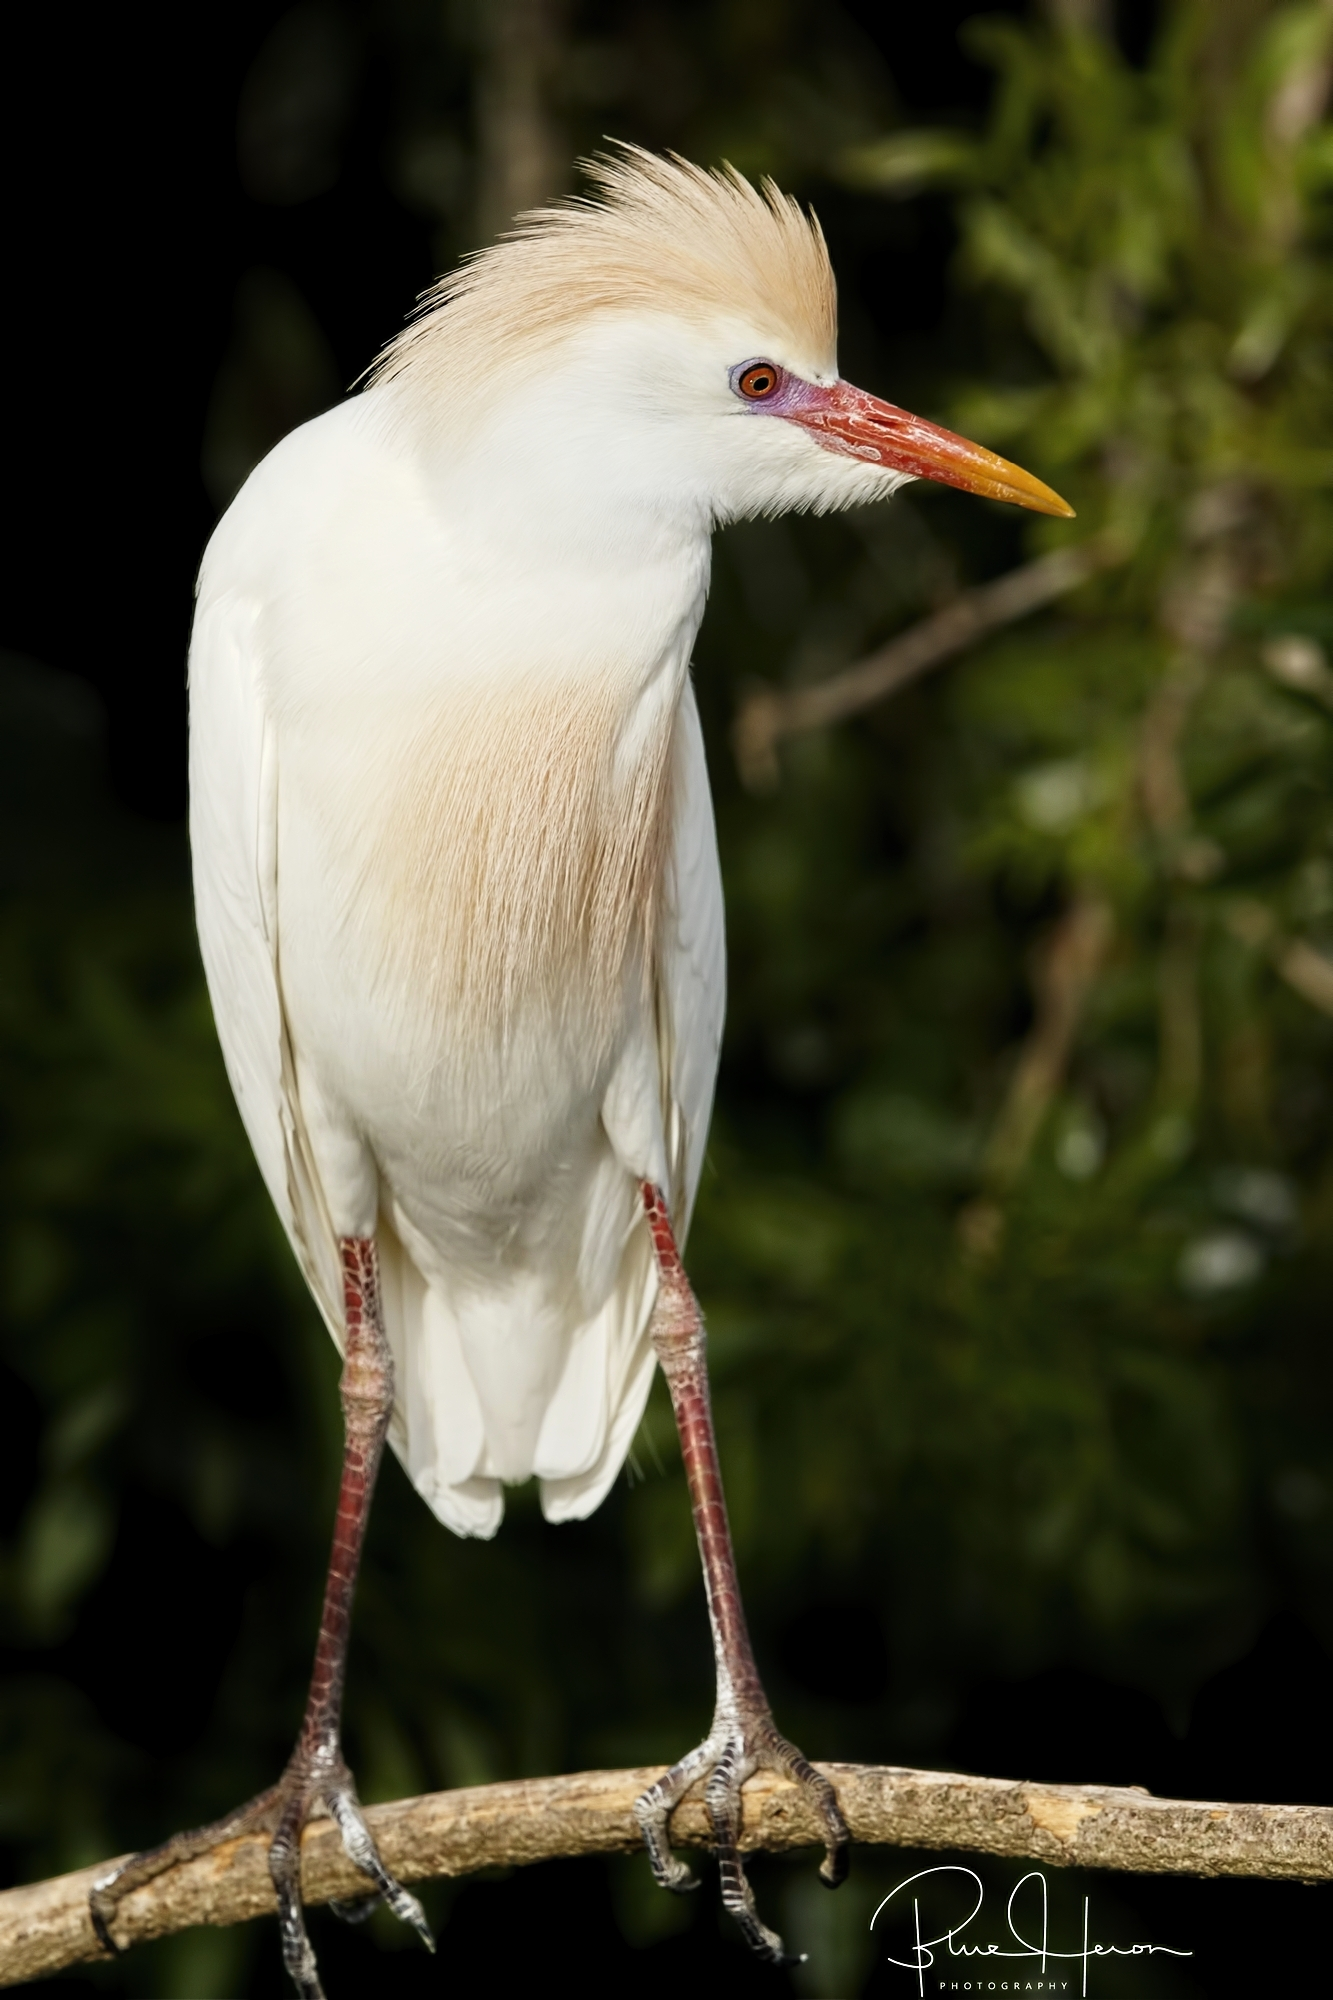 This Cattle Egret at Gatorland was showing breeding colors on the head and chest feathers.